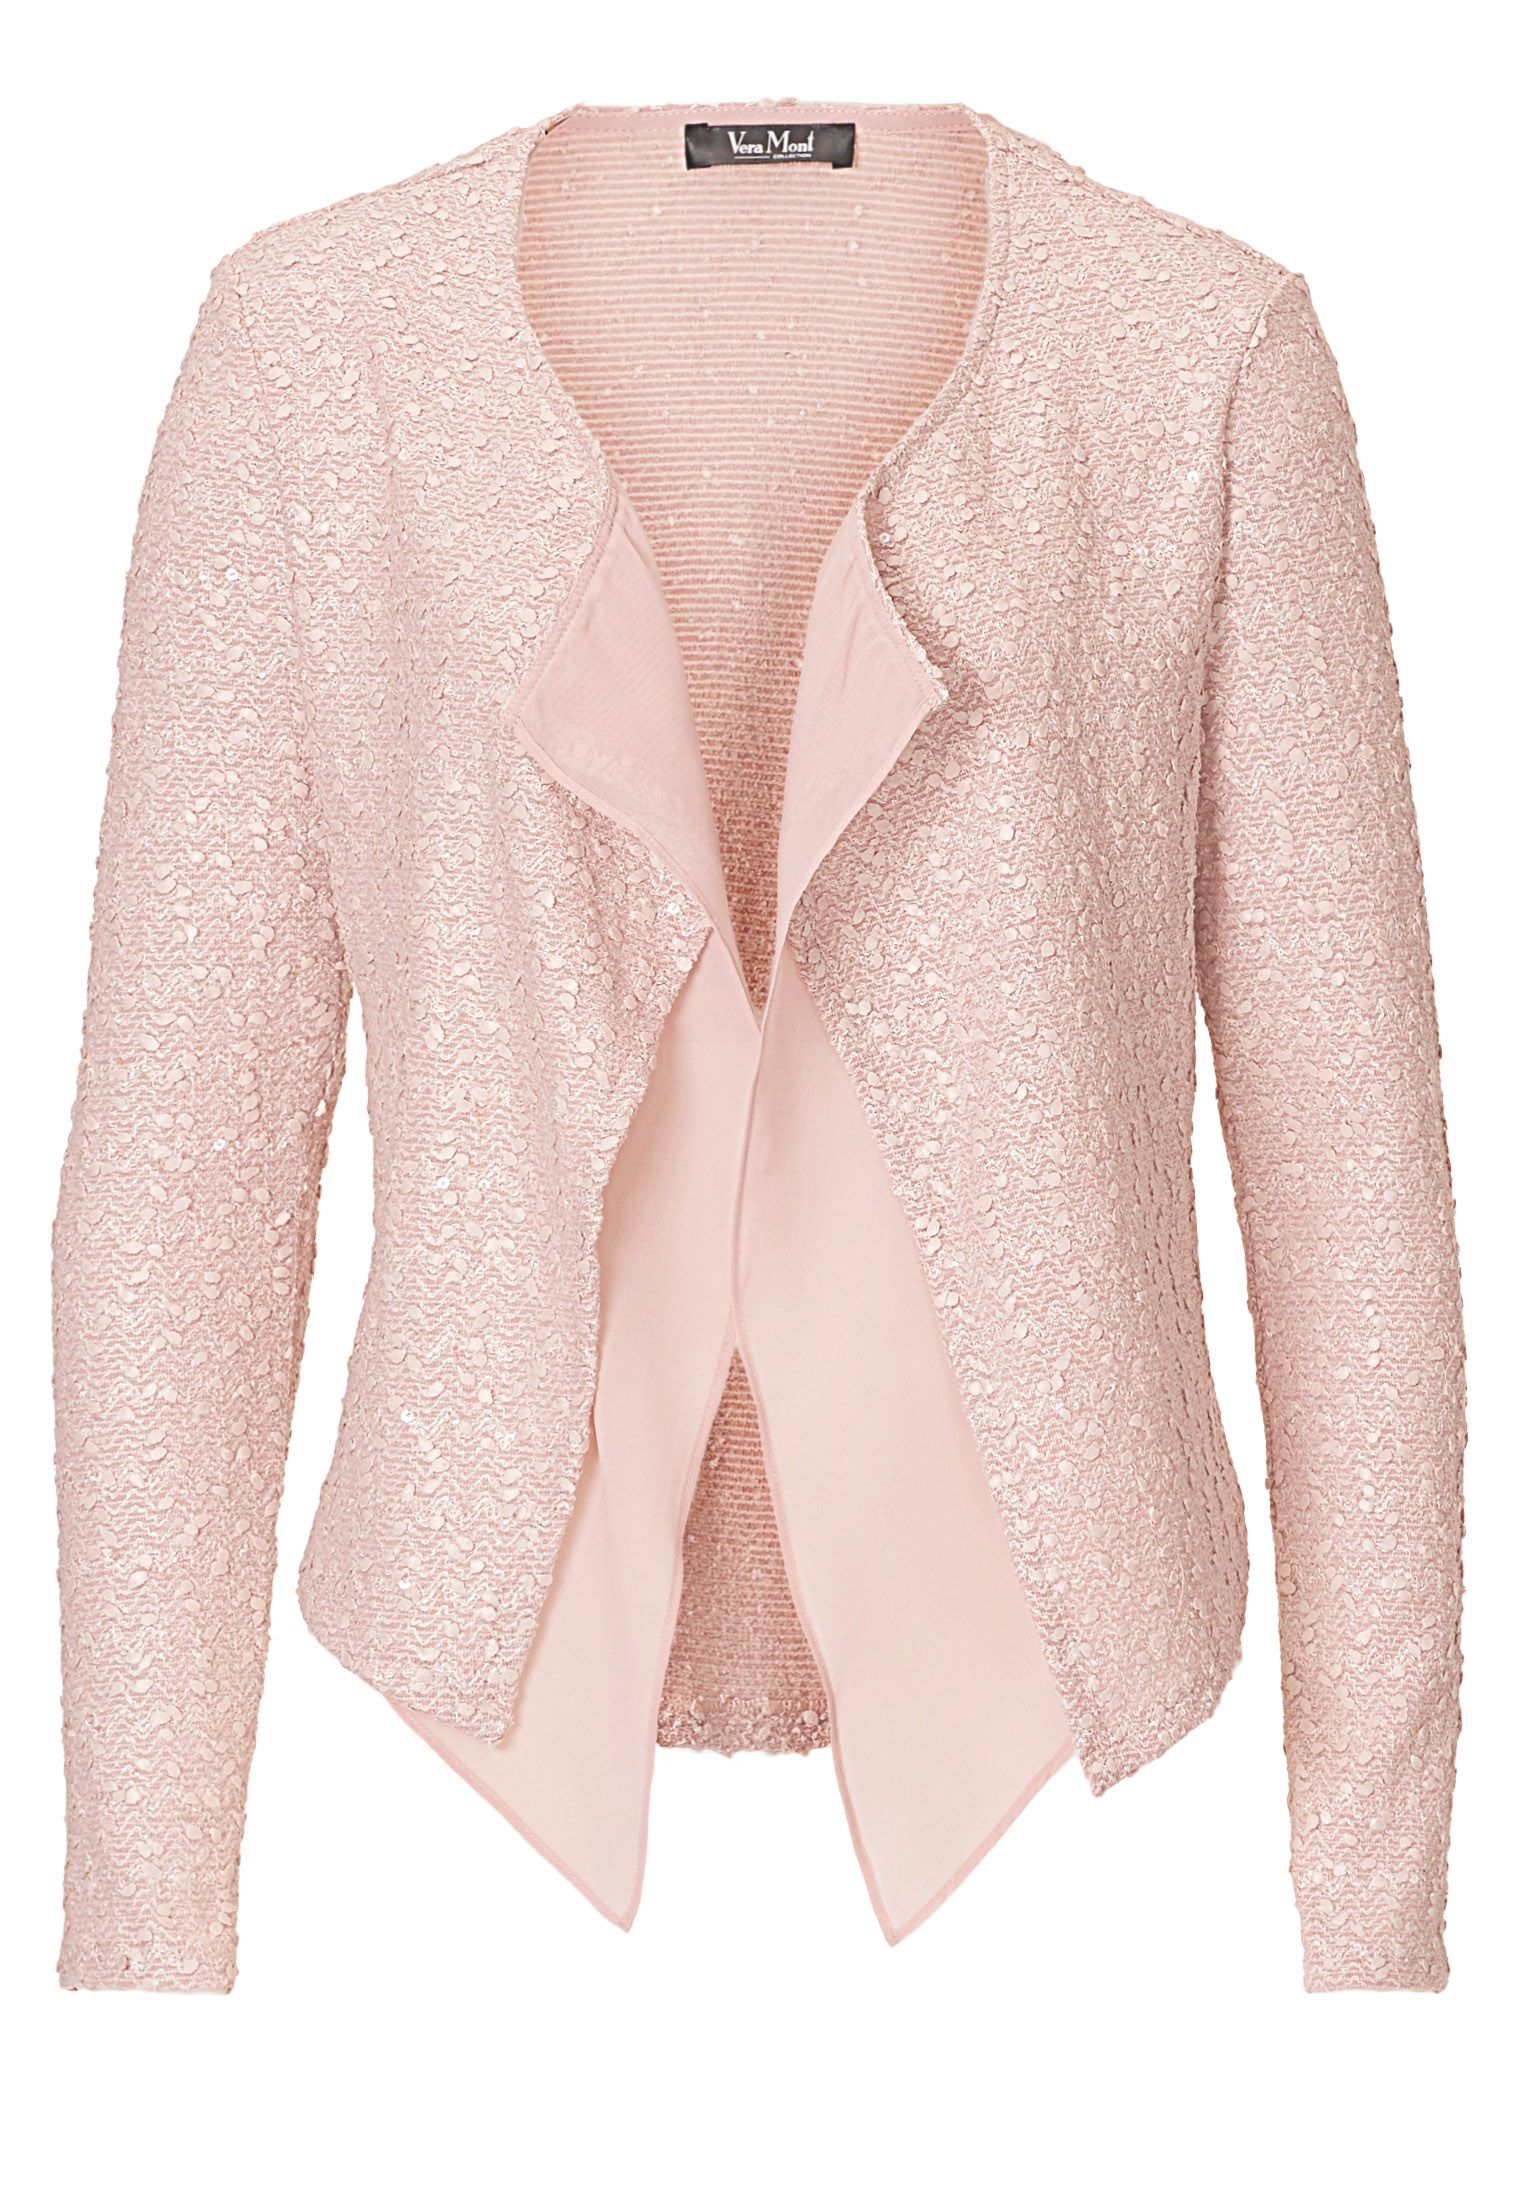 Vera Mont Textured waterfall jacket, White